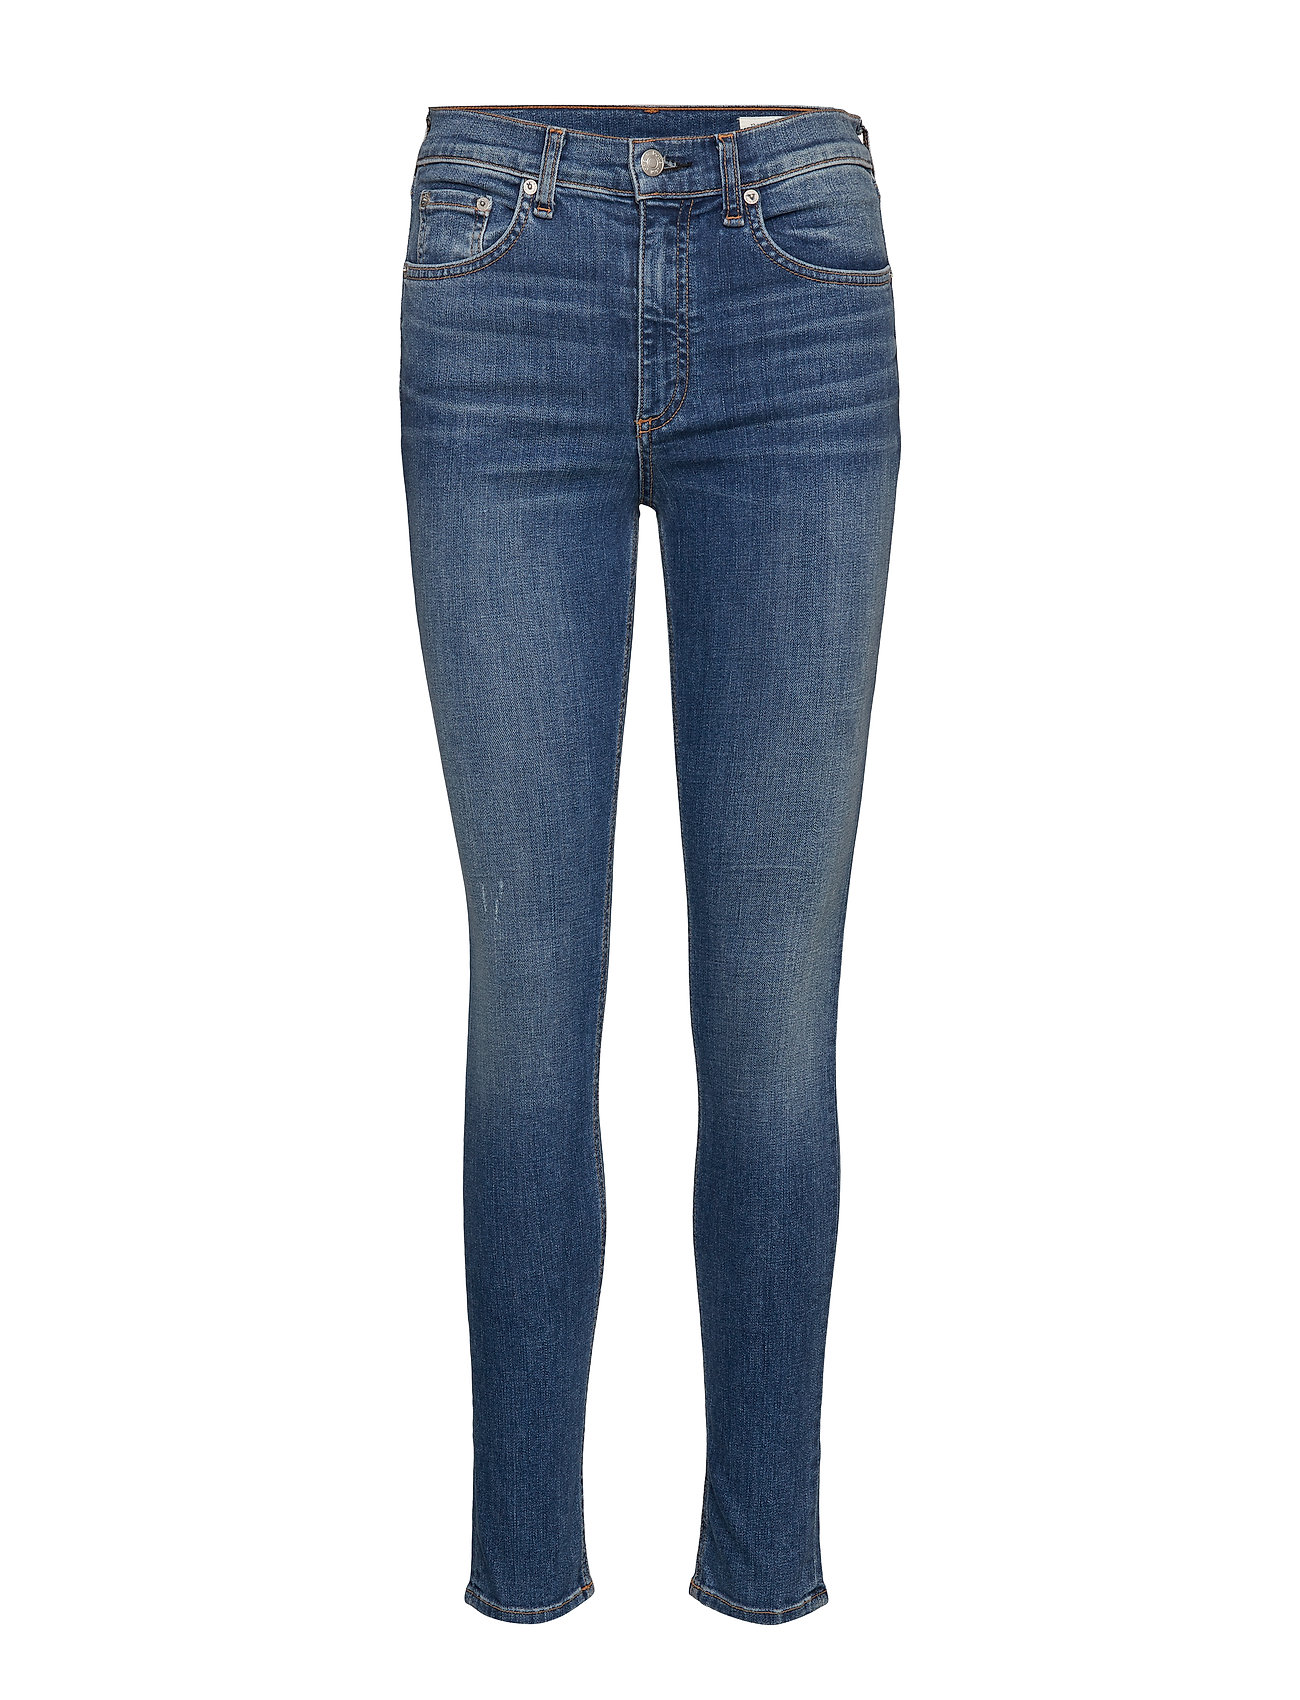 rag & bone HIGH RISE SKINNY - EL